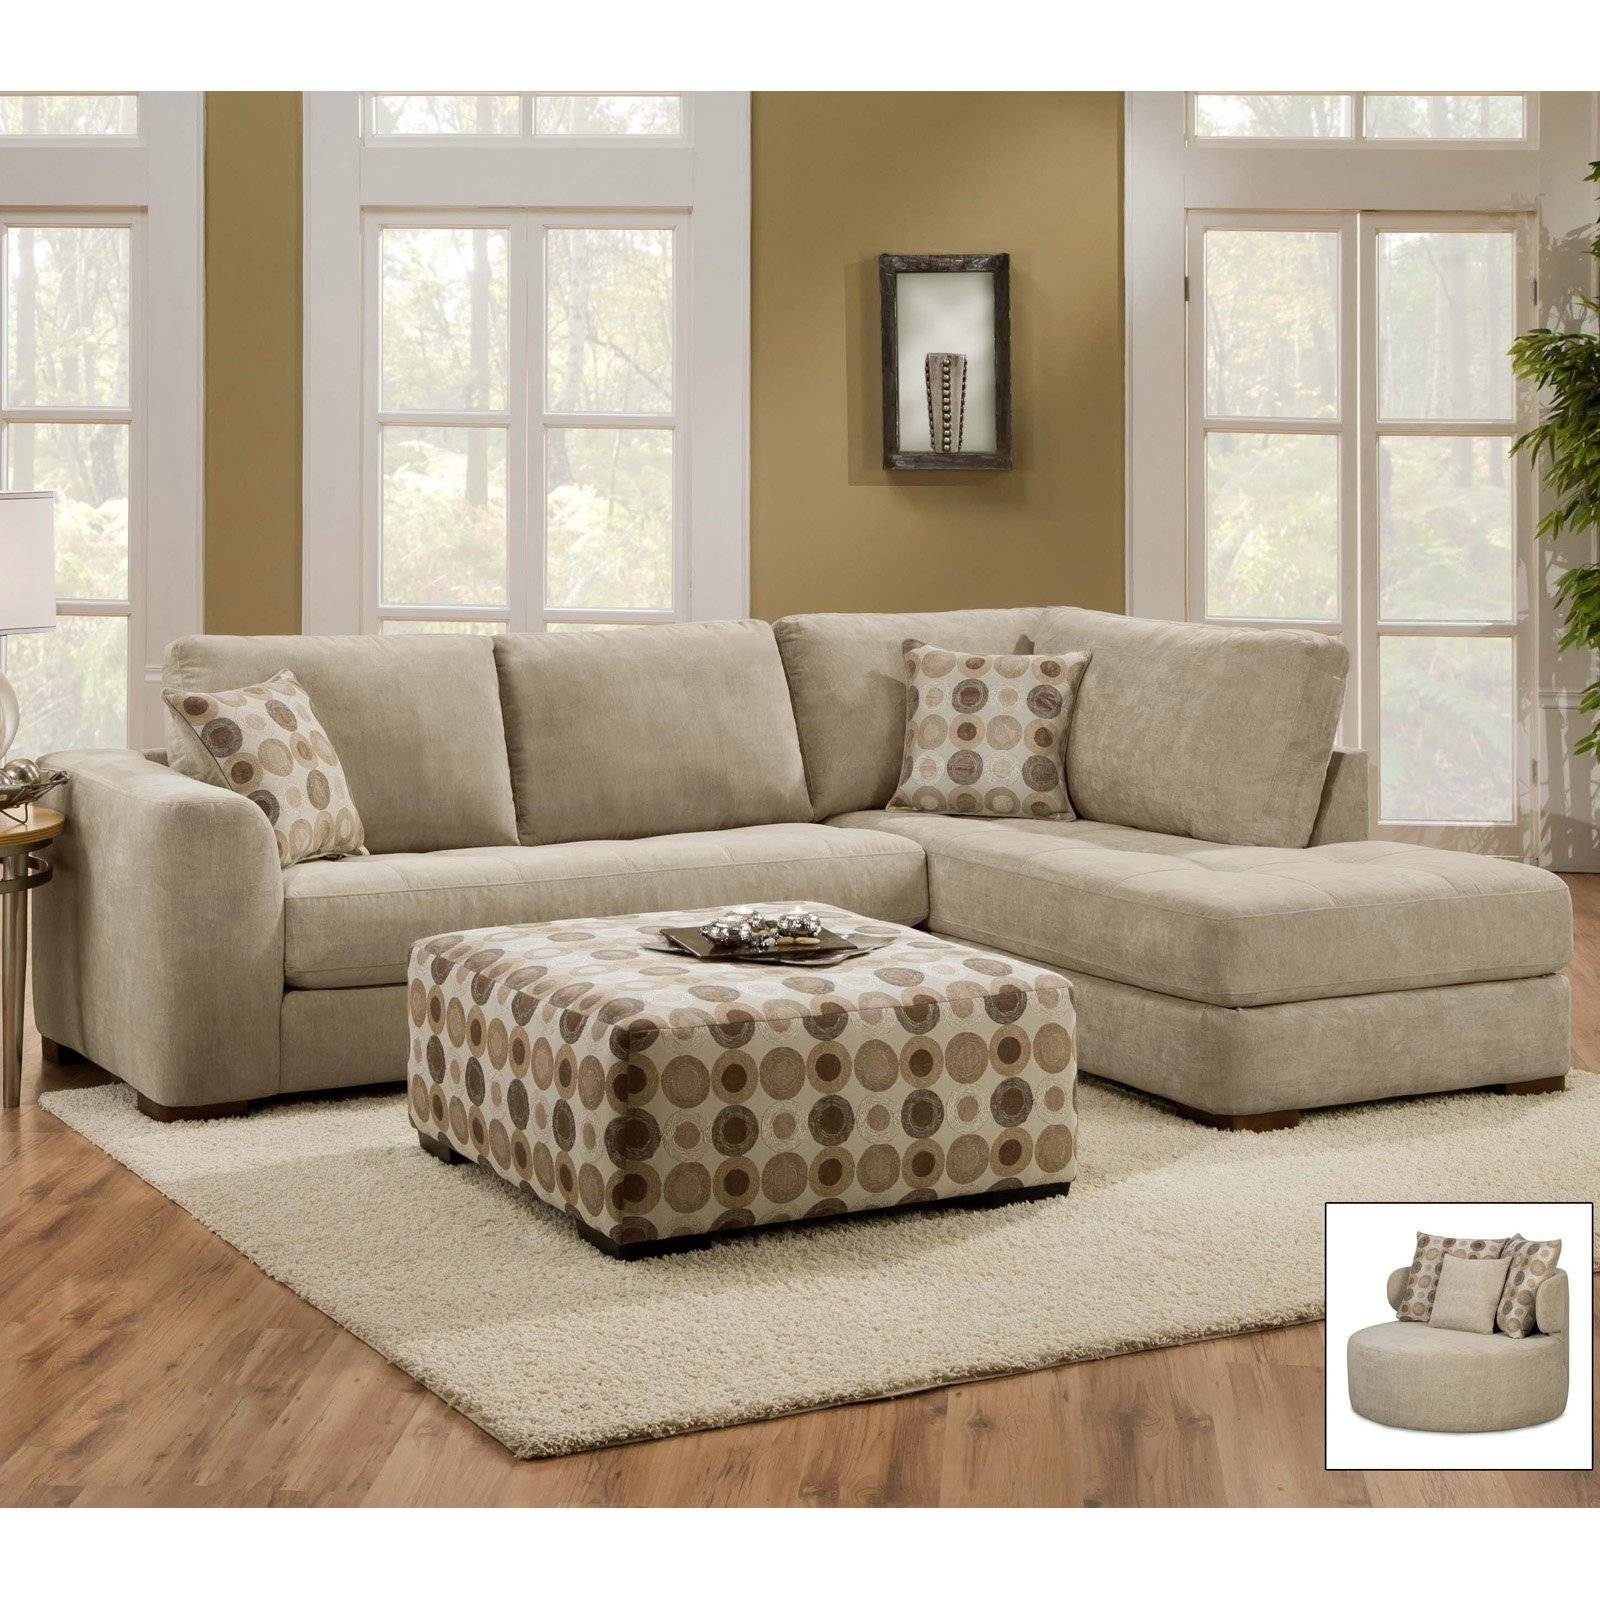 Amazing 2 Piece Sectional Sofa 80 About Remodel Sofas And Couches inside 2 Piece Sofas (Image 5 of 15)